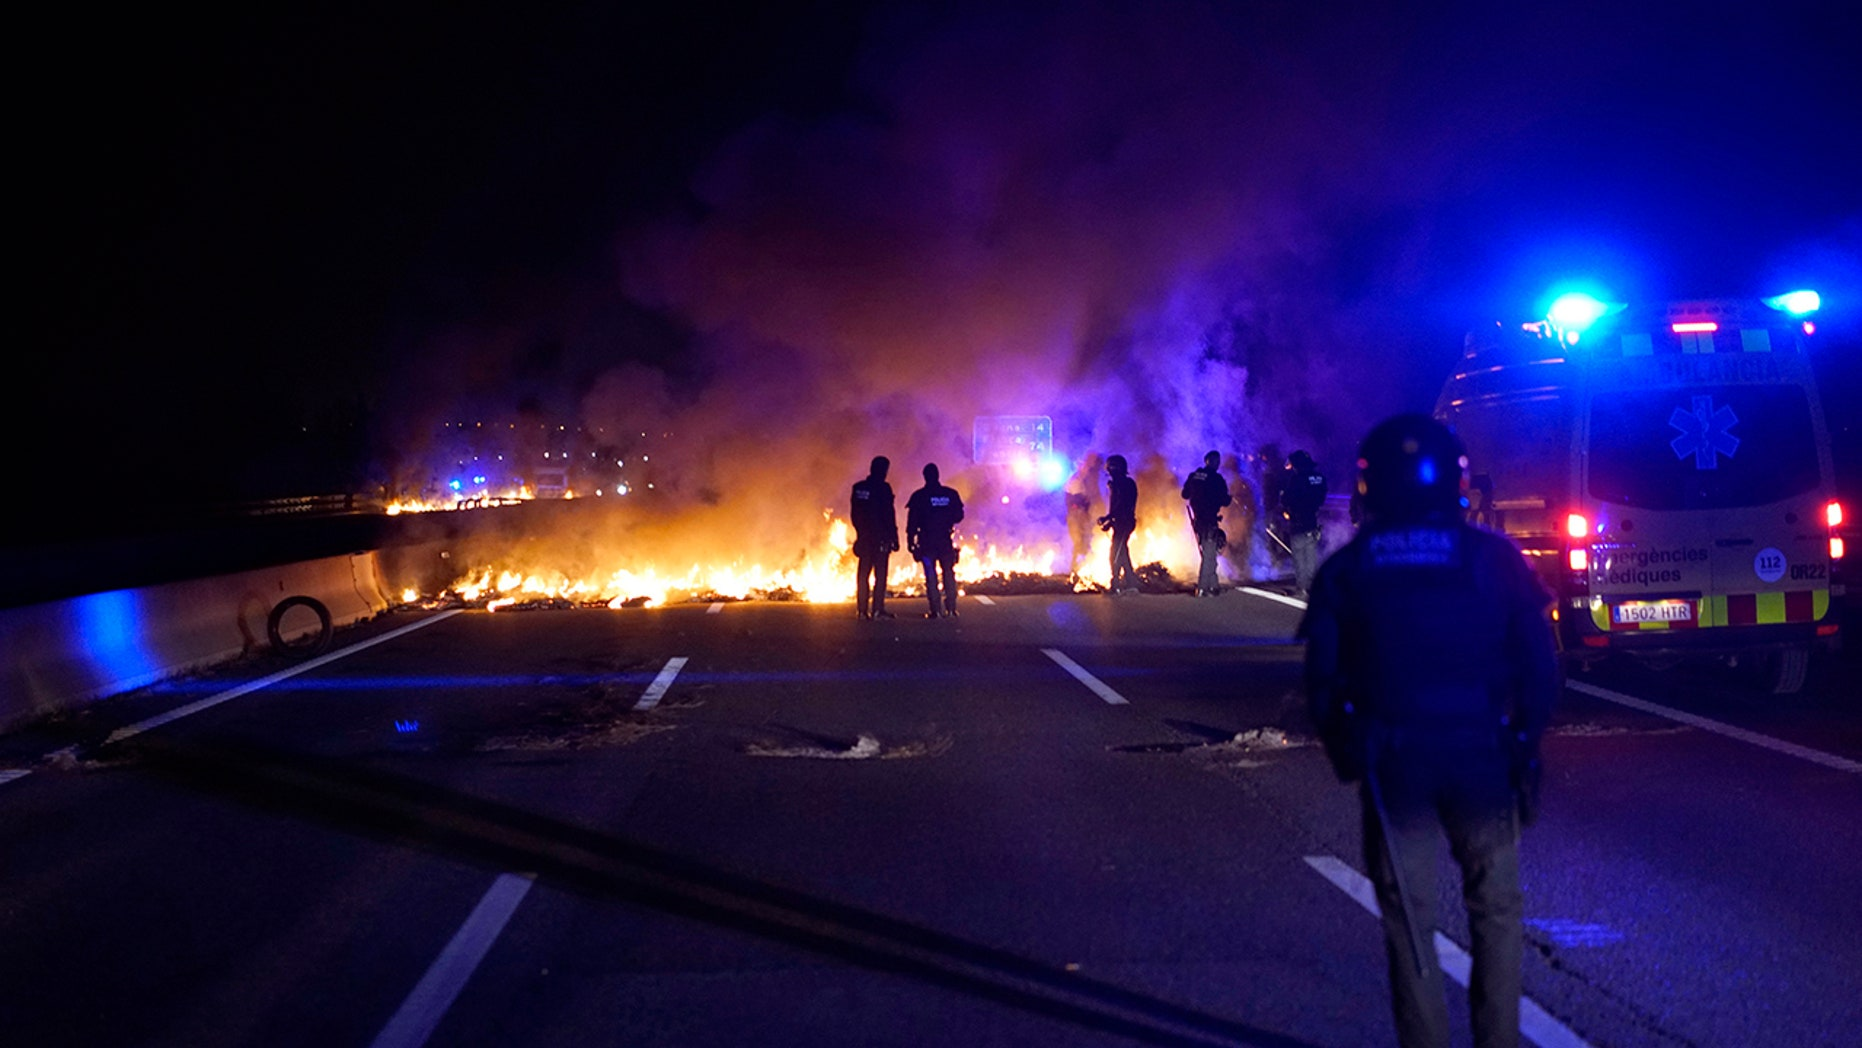 Police officers try to remove burning tires, set by demonstrators to block a highway in protest of the imprisonment of pro-independence political leaders during a general strike in Catalonia, Spain, Thursday, Feb. 21.